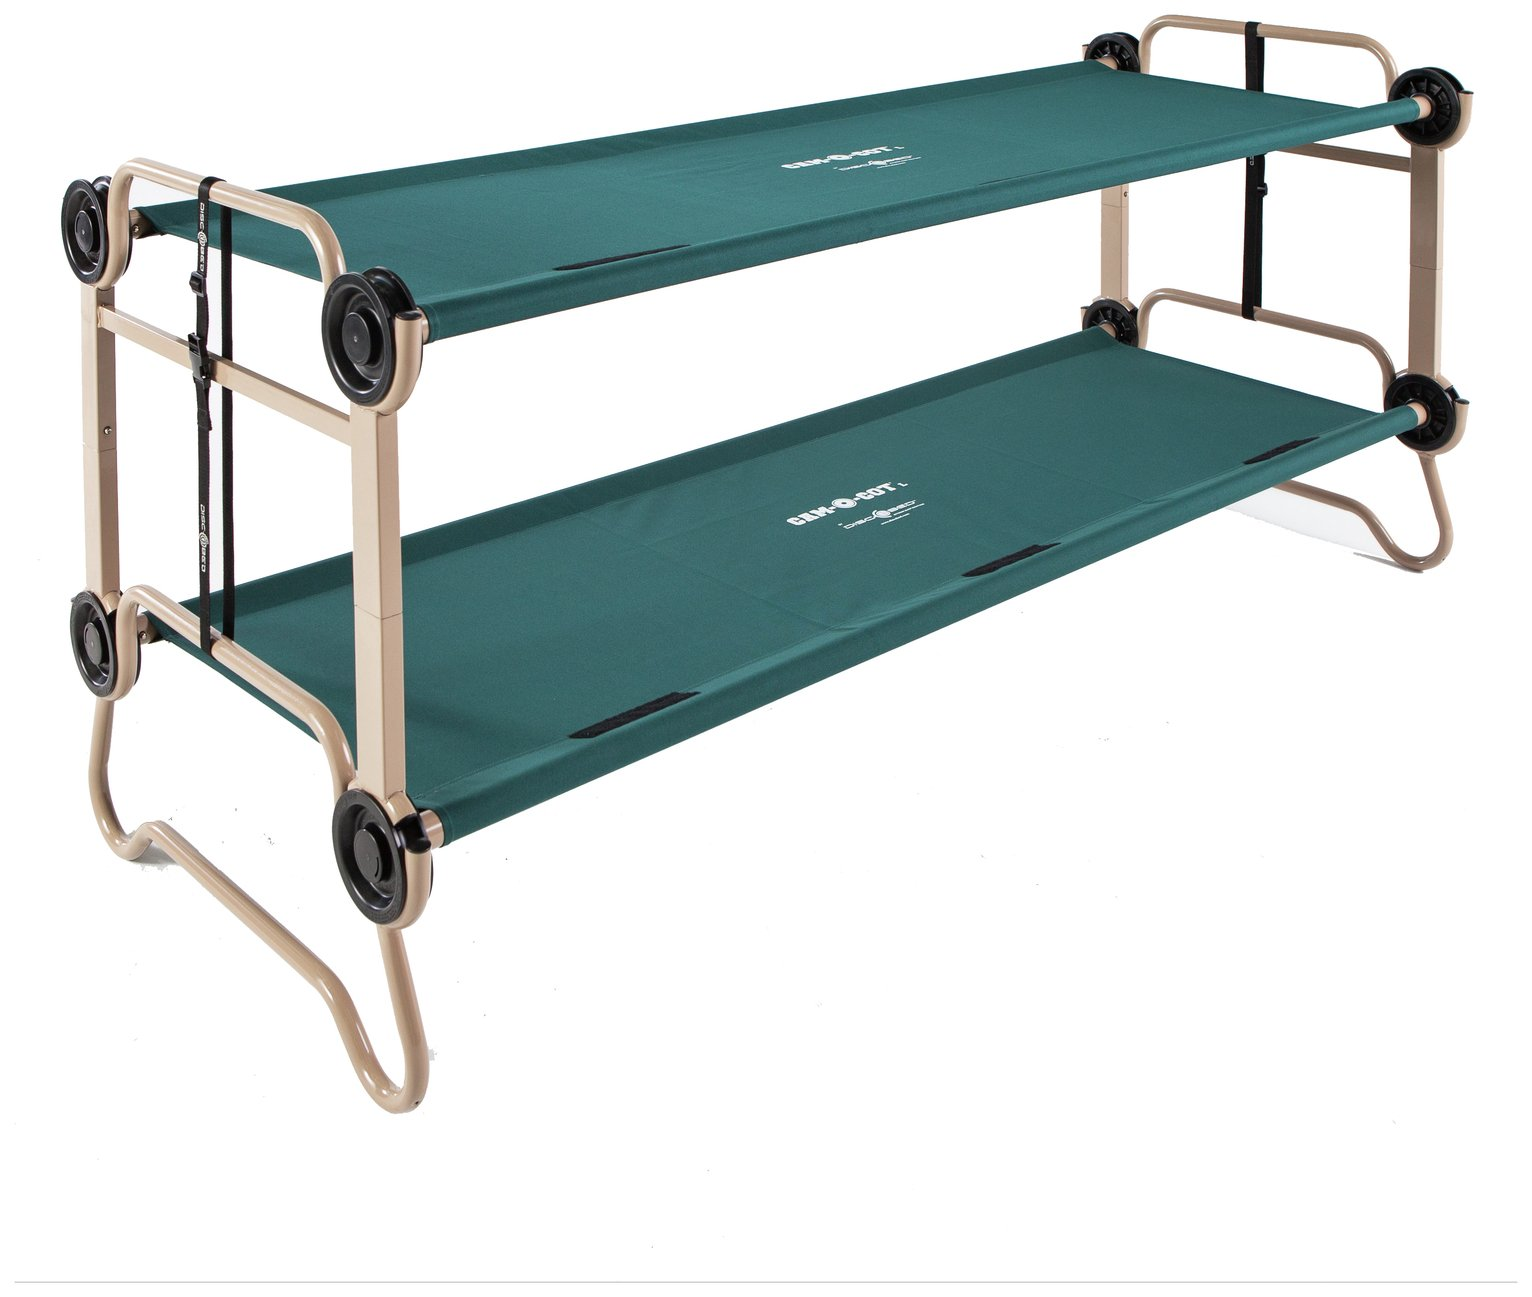 Image of Disc-O-Bed Mobile Bunk Bed - Large